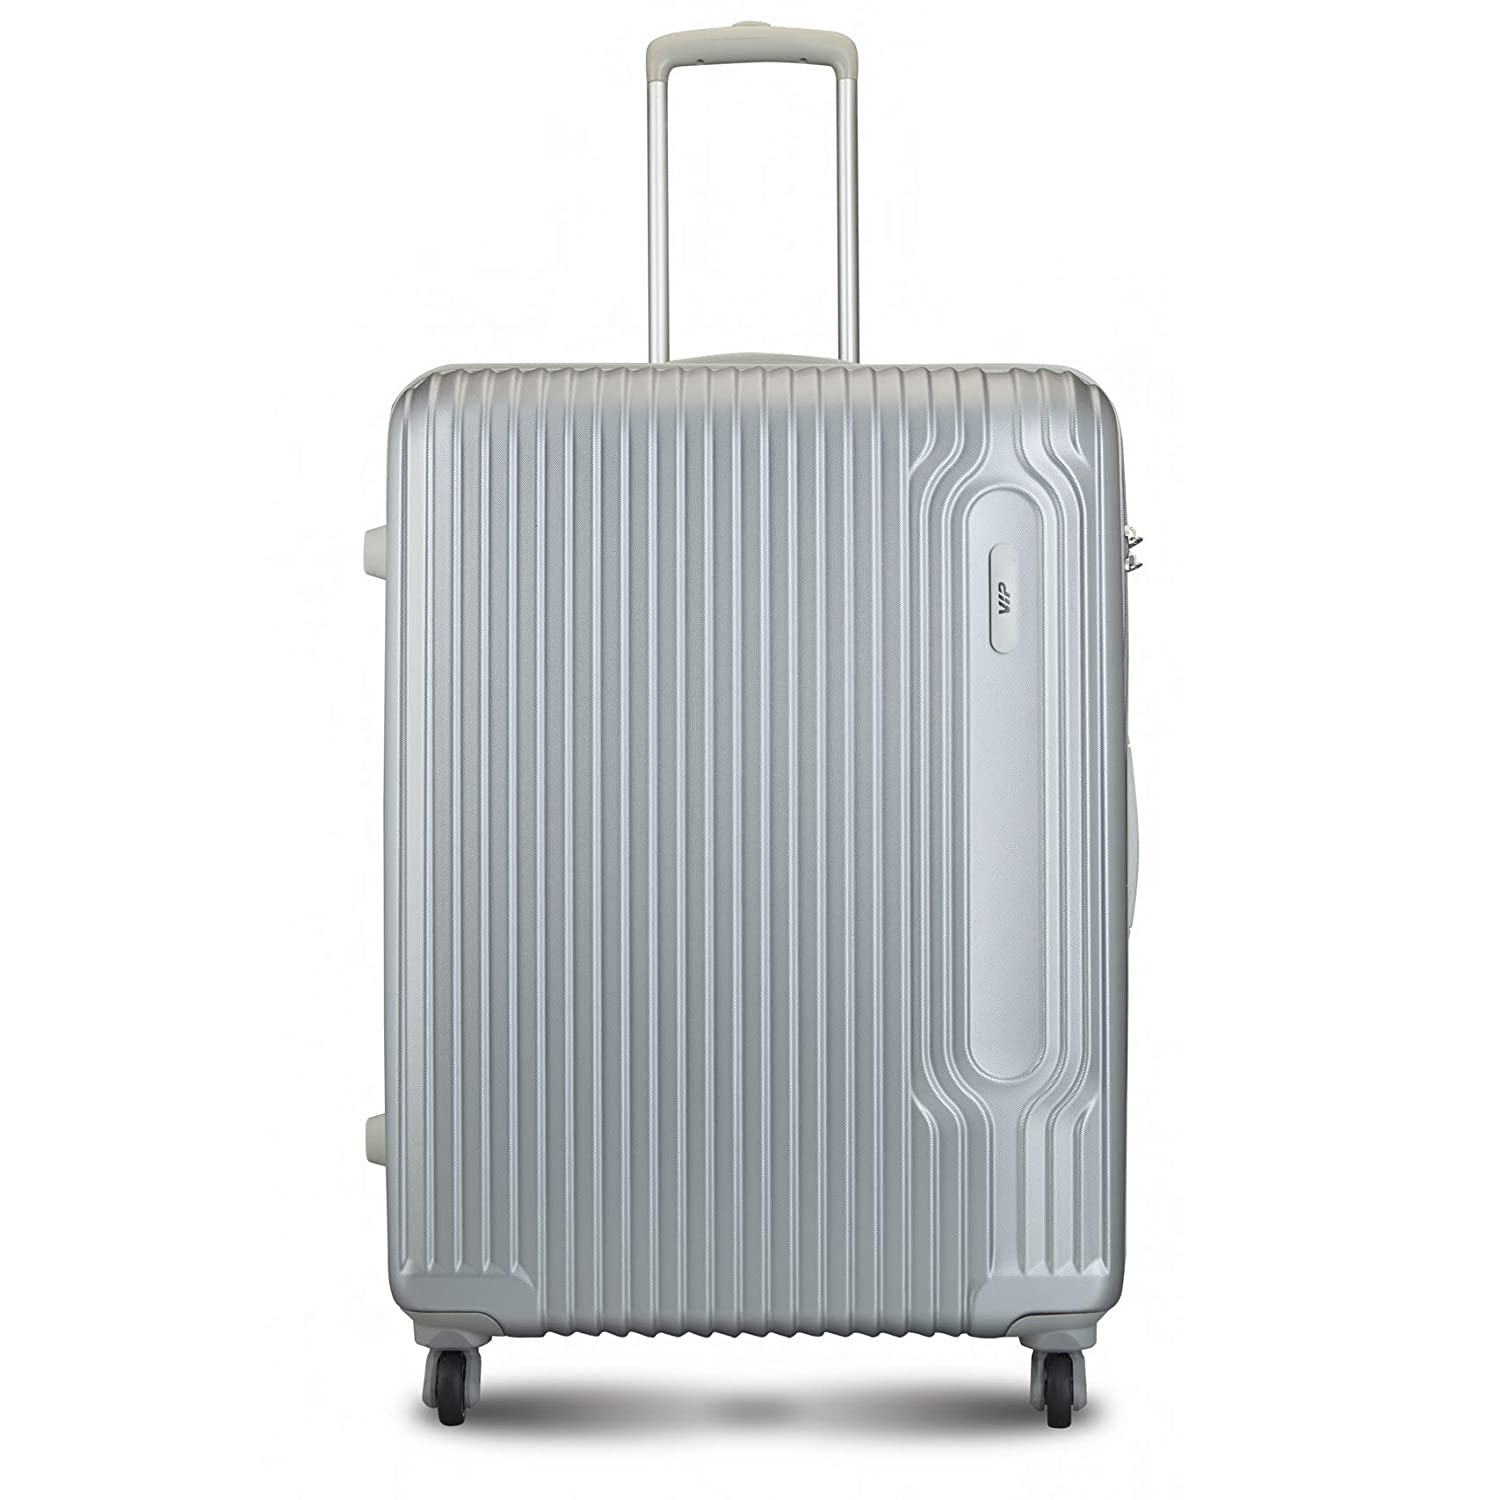 [Apply coupon] VIP Track Polycarbonate 76 Cms Silver Hardsided Check-in Luggage (Track)